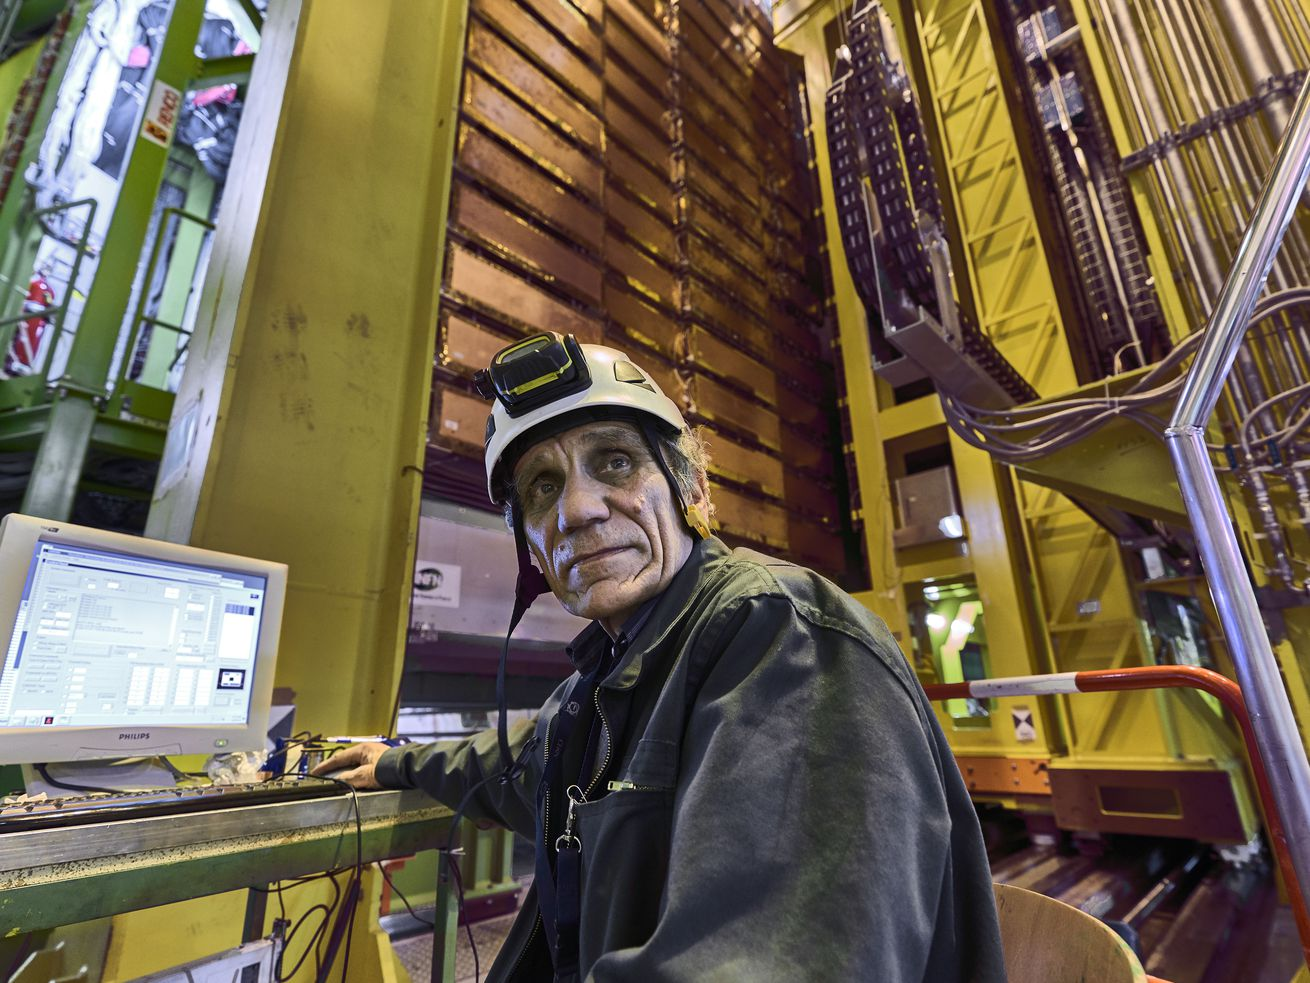 In this 2018 photo made available by CERN, Nikolai Bondar works on the LHCb Muon system at the European Organization for Nuclear Research Large Hadron Collider facility outside of Geneva.